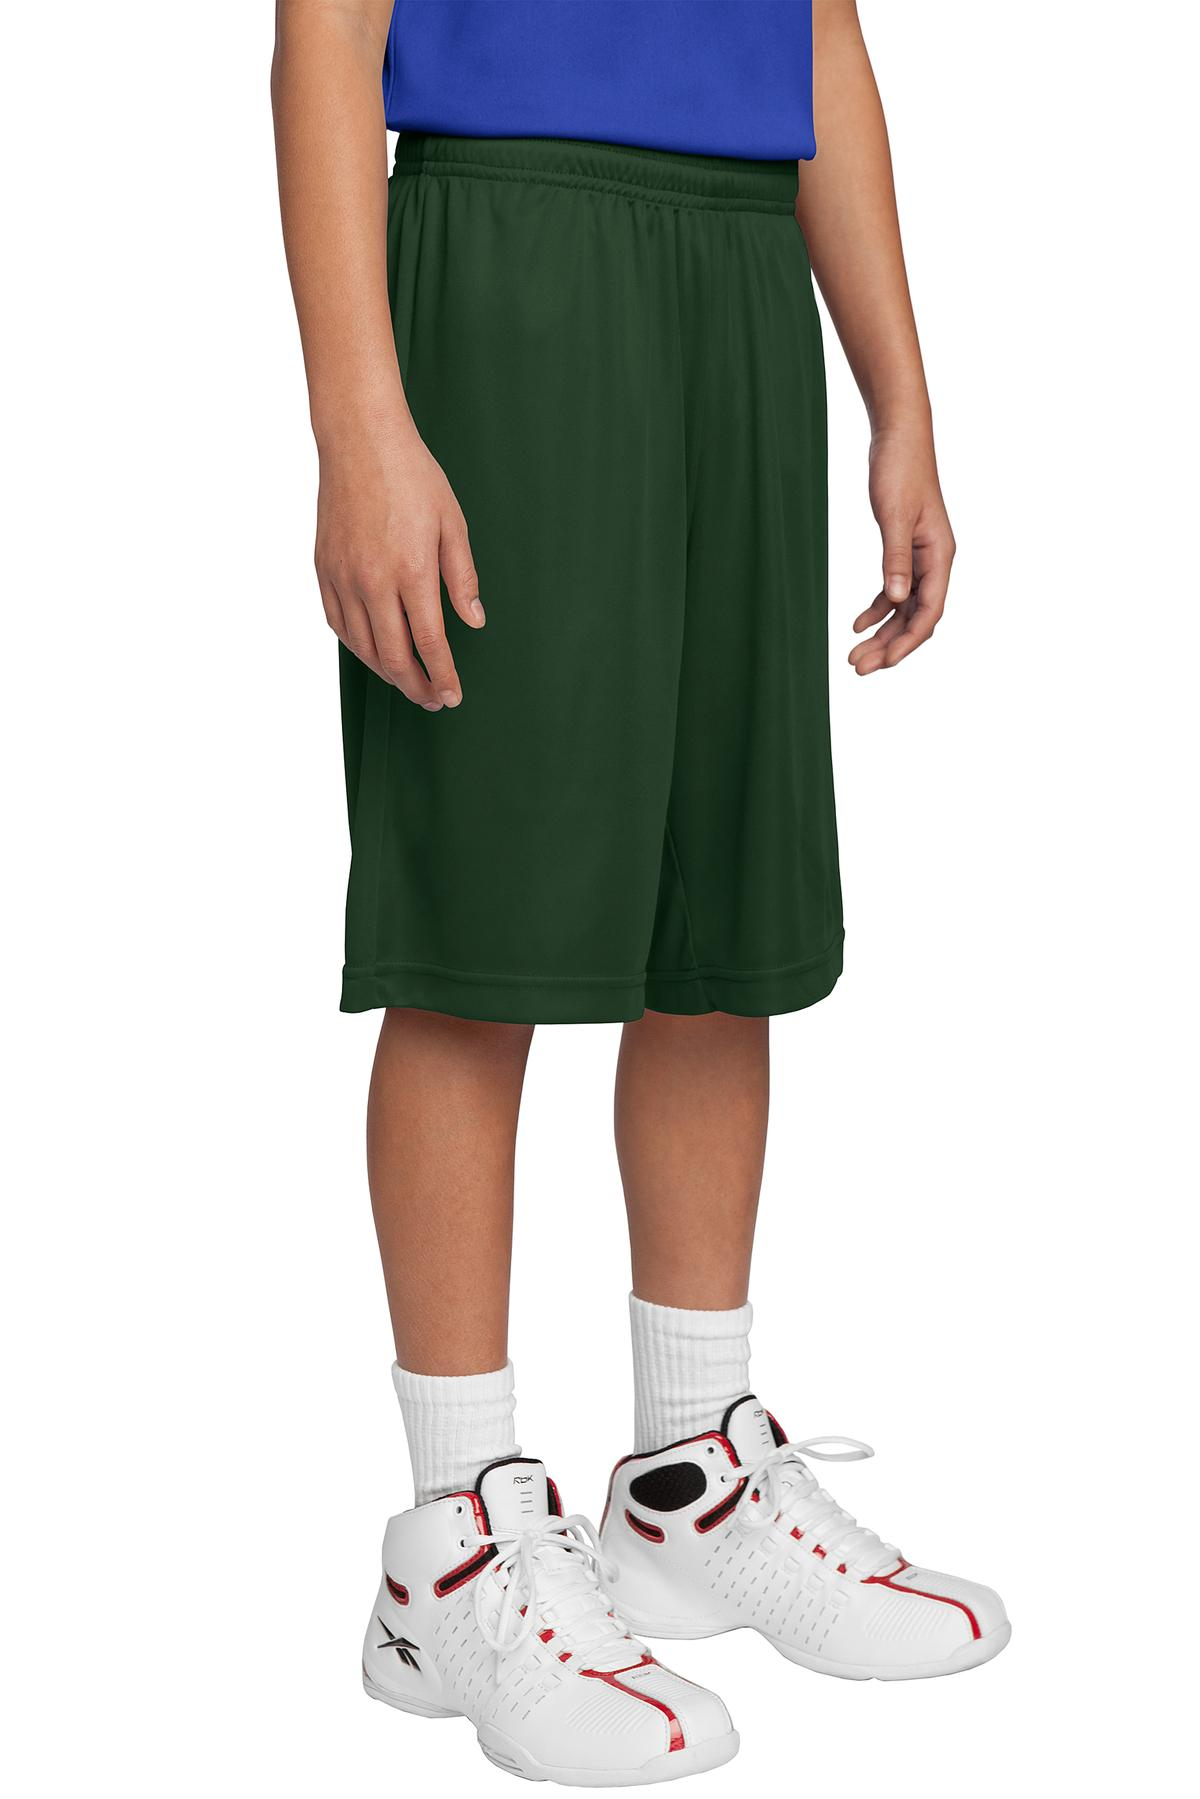 Sport-Tek ®  Youth PosiCharge ®  Competitor™ Short. YST355 - Forest Green